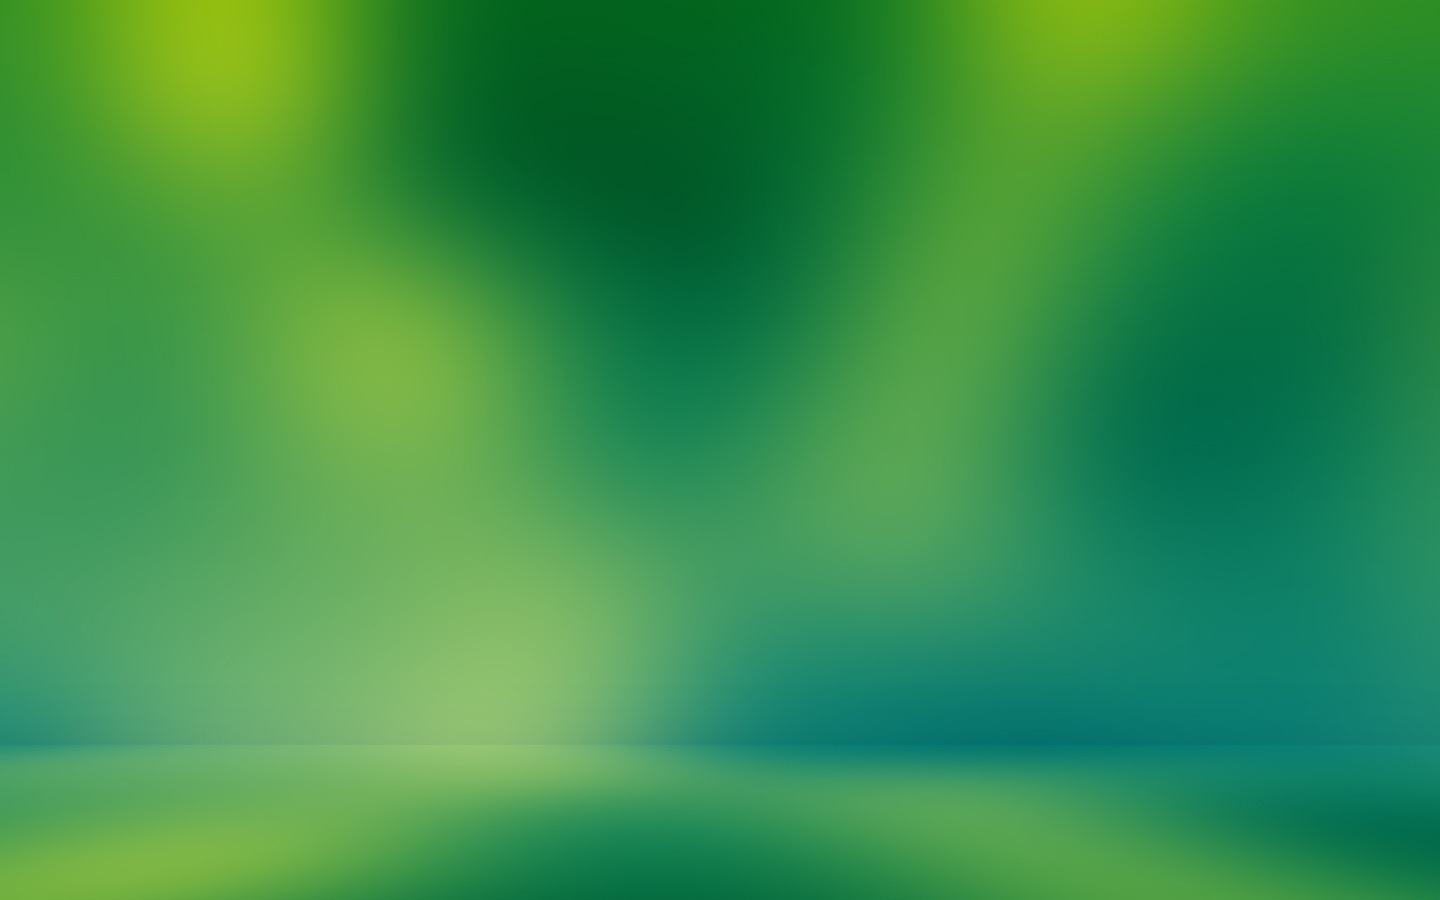 abstract colors mce2008 plain plain abstract layout 1 40440 1440x900